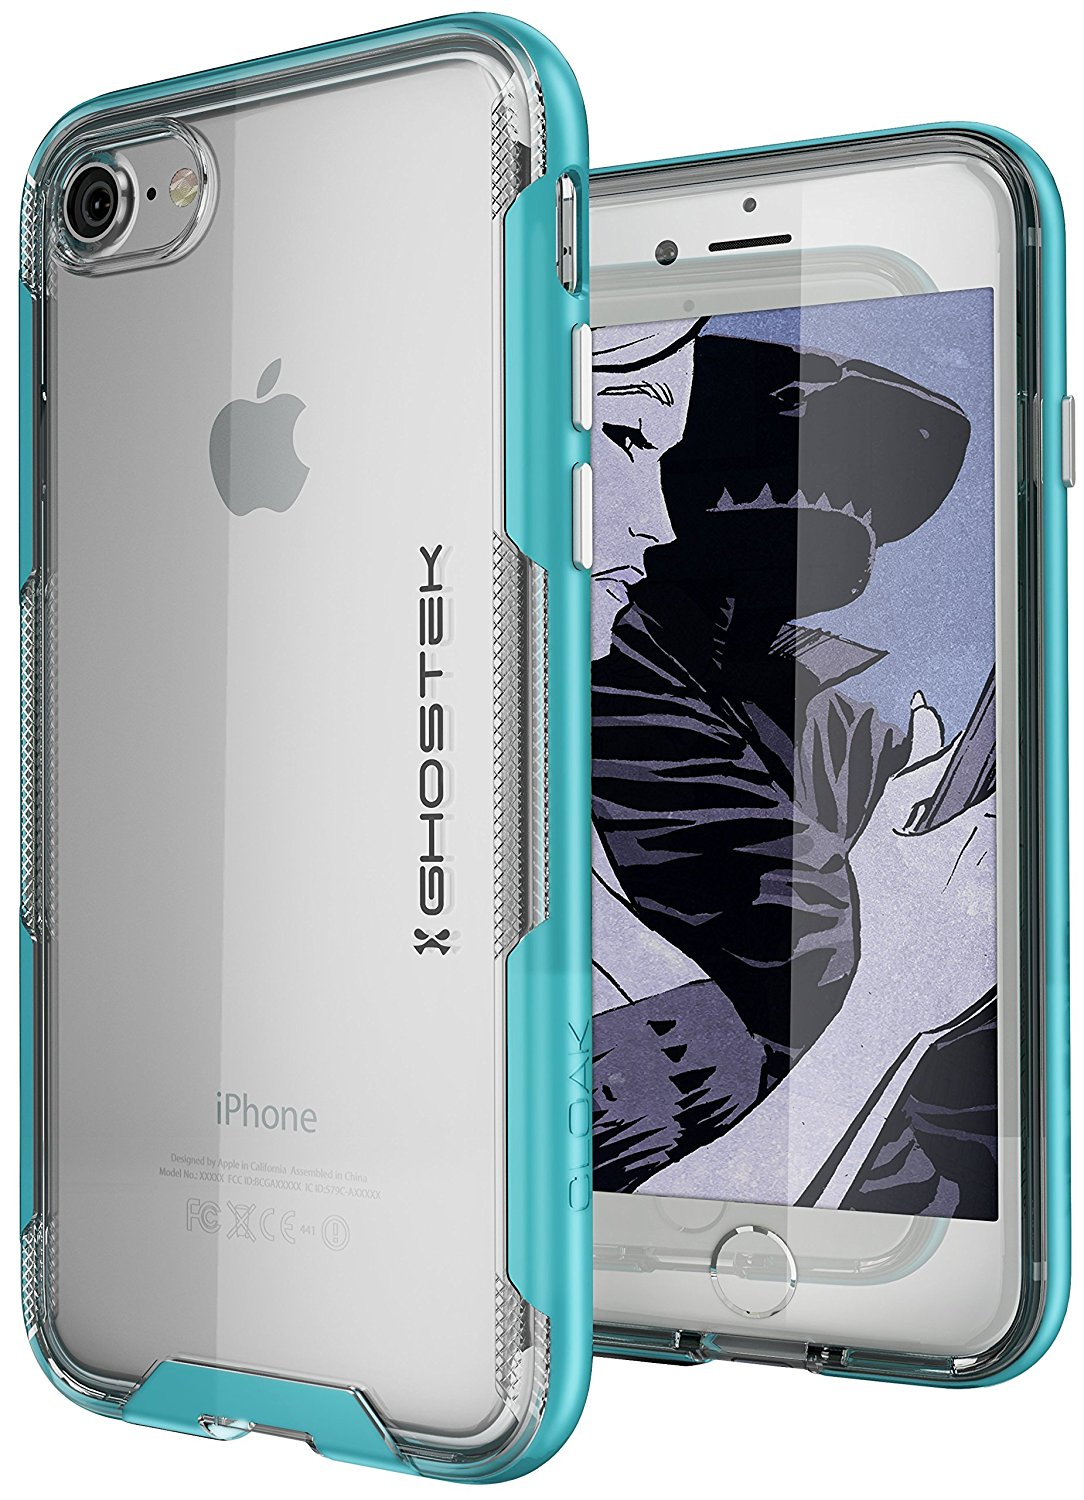 iPhone 7 Case, Ghostek Cloak 3 Series Case for iPhone 7 Case Clear Protective Case [TEAL]